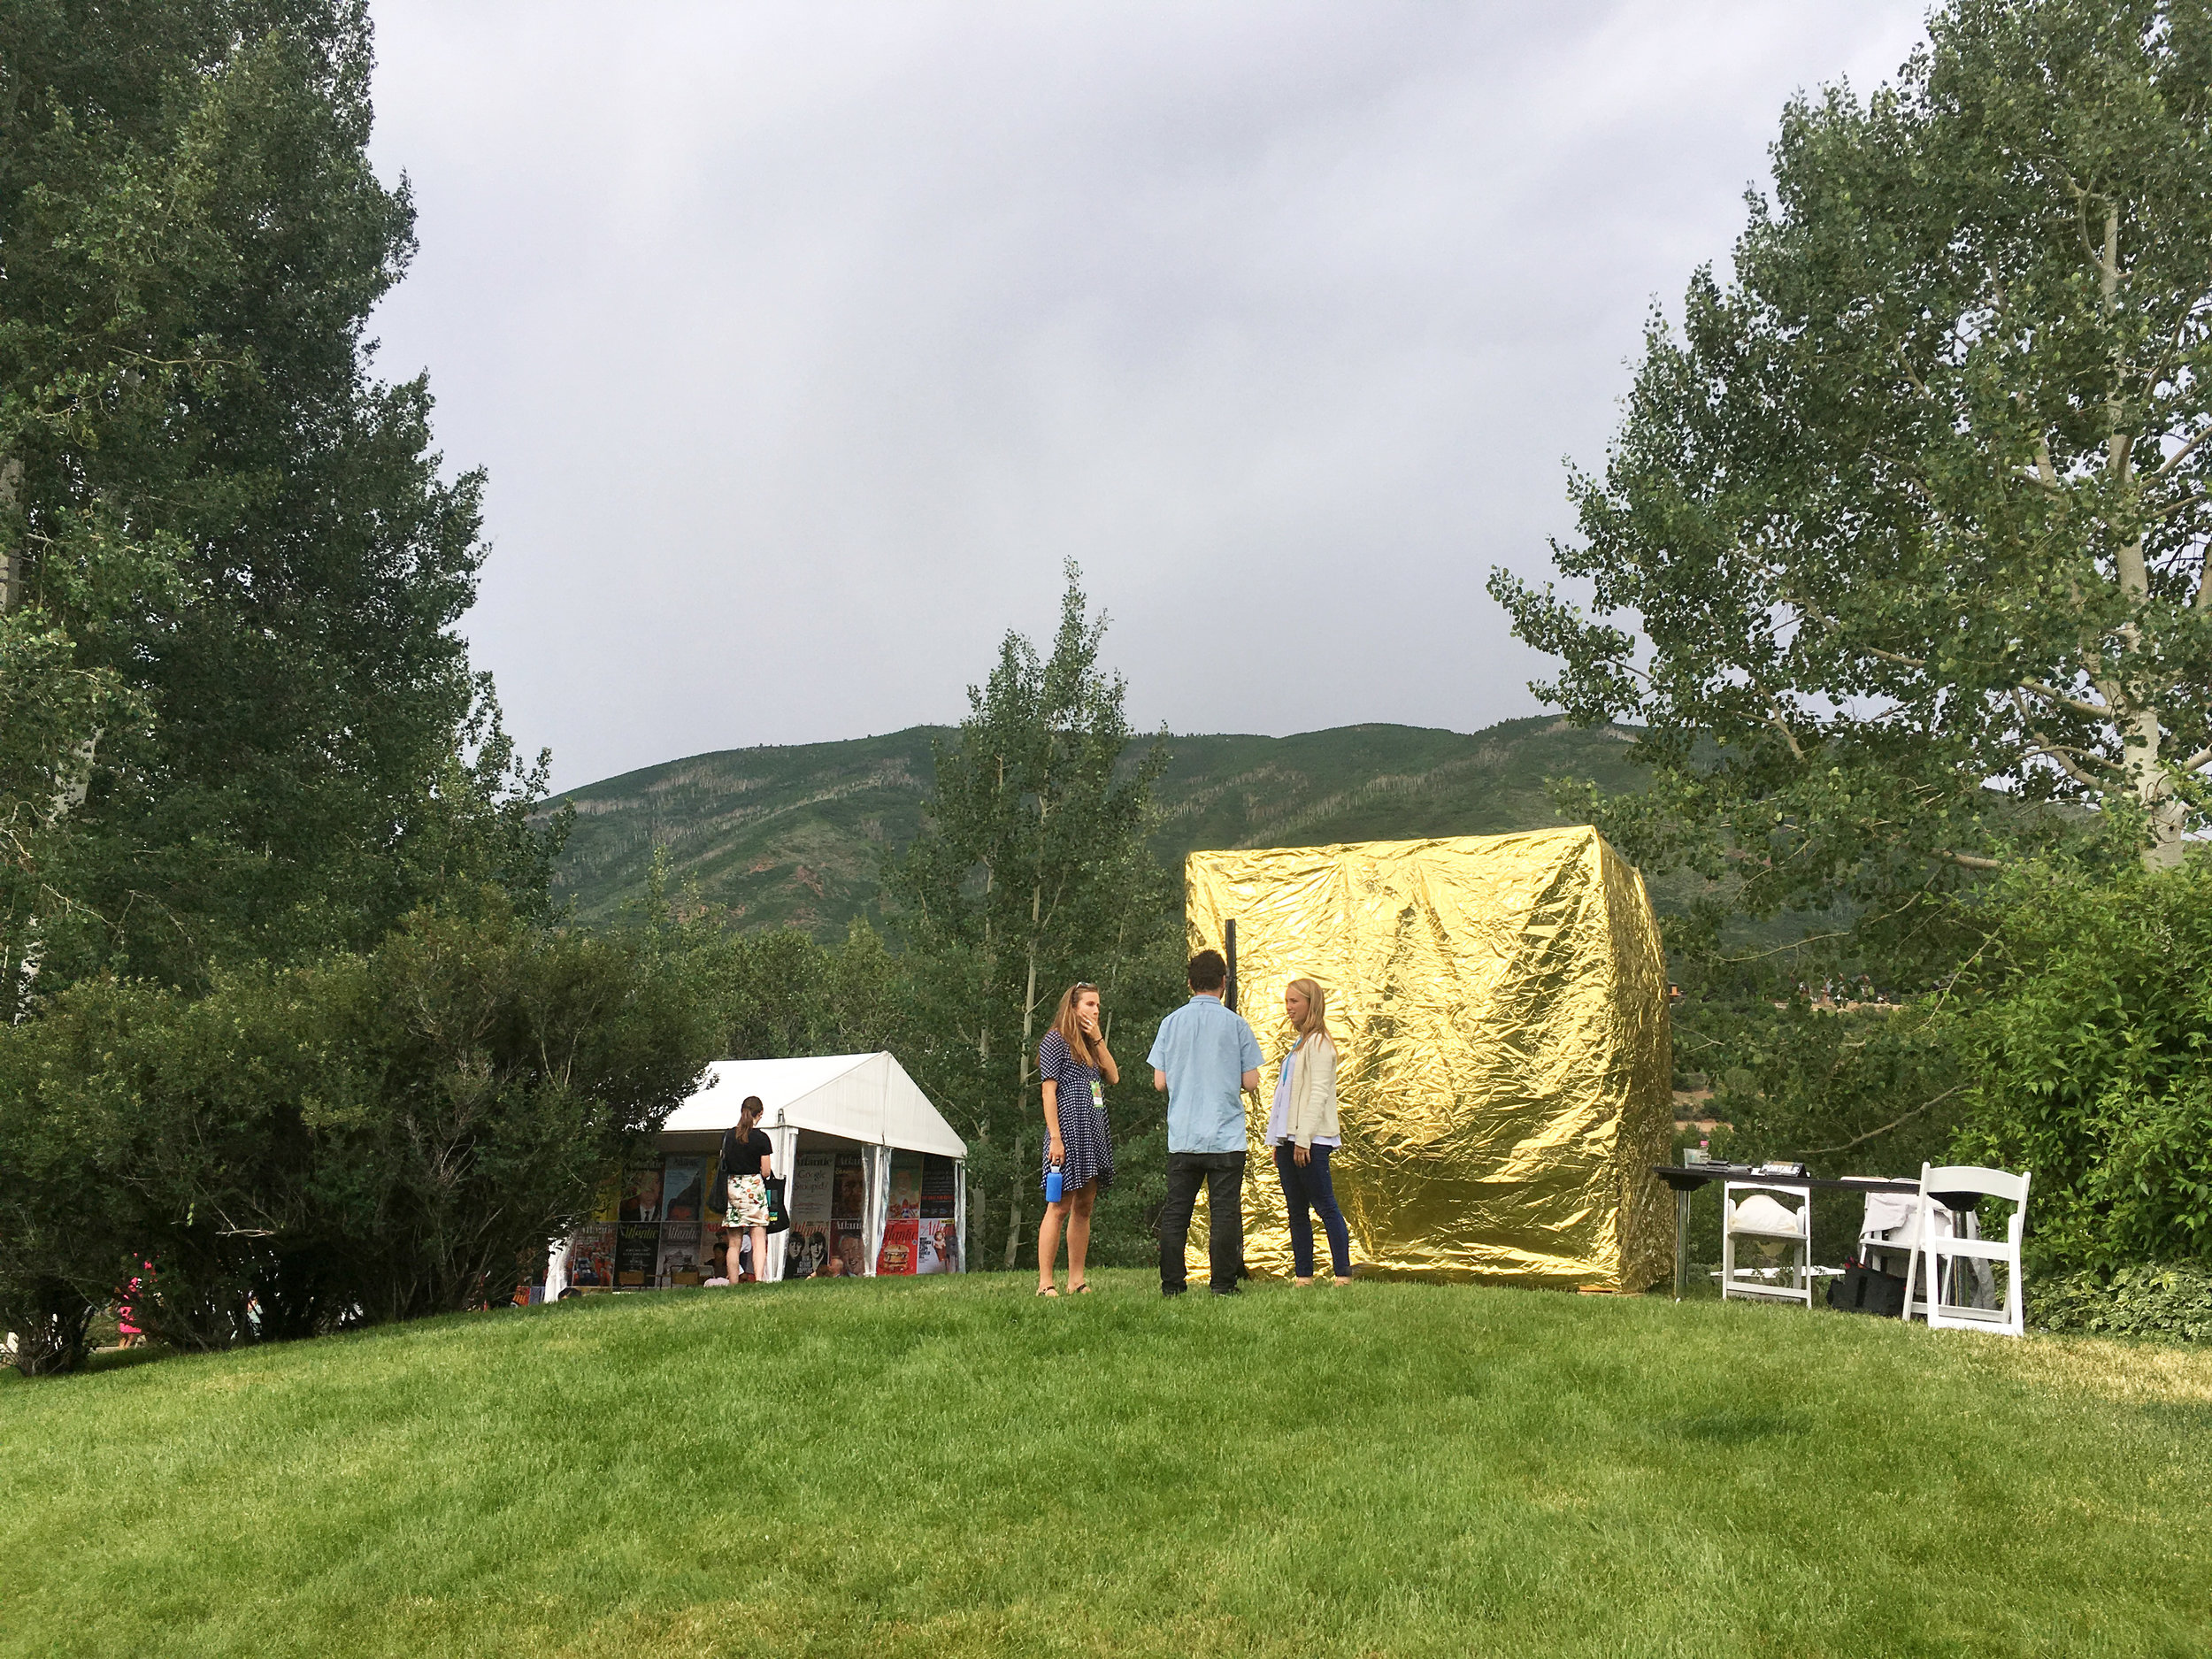 We popped up a Portal at the Aspen Ideas Festival this summer thanks to Damian Woetzel,Aspen Institute's Arts Program.